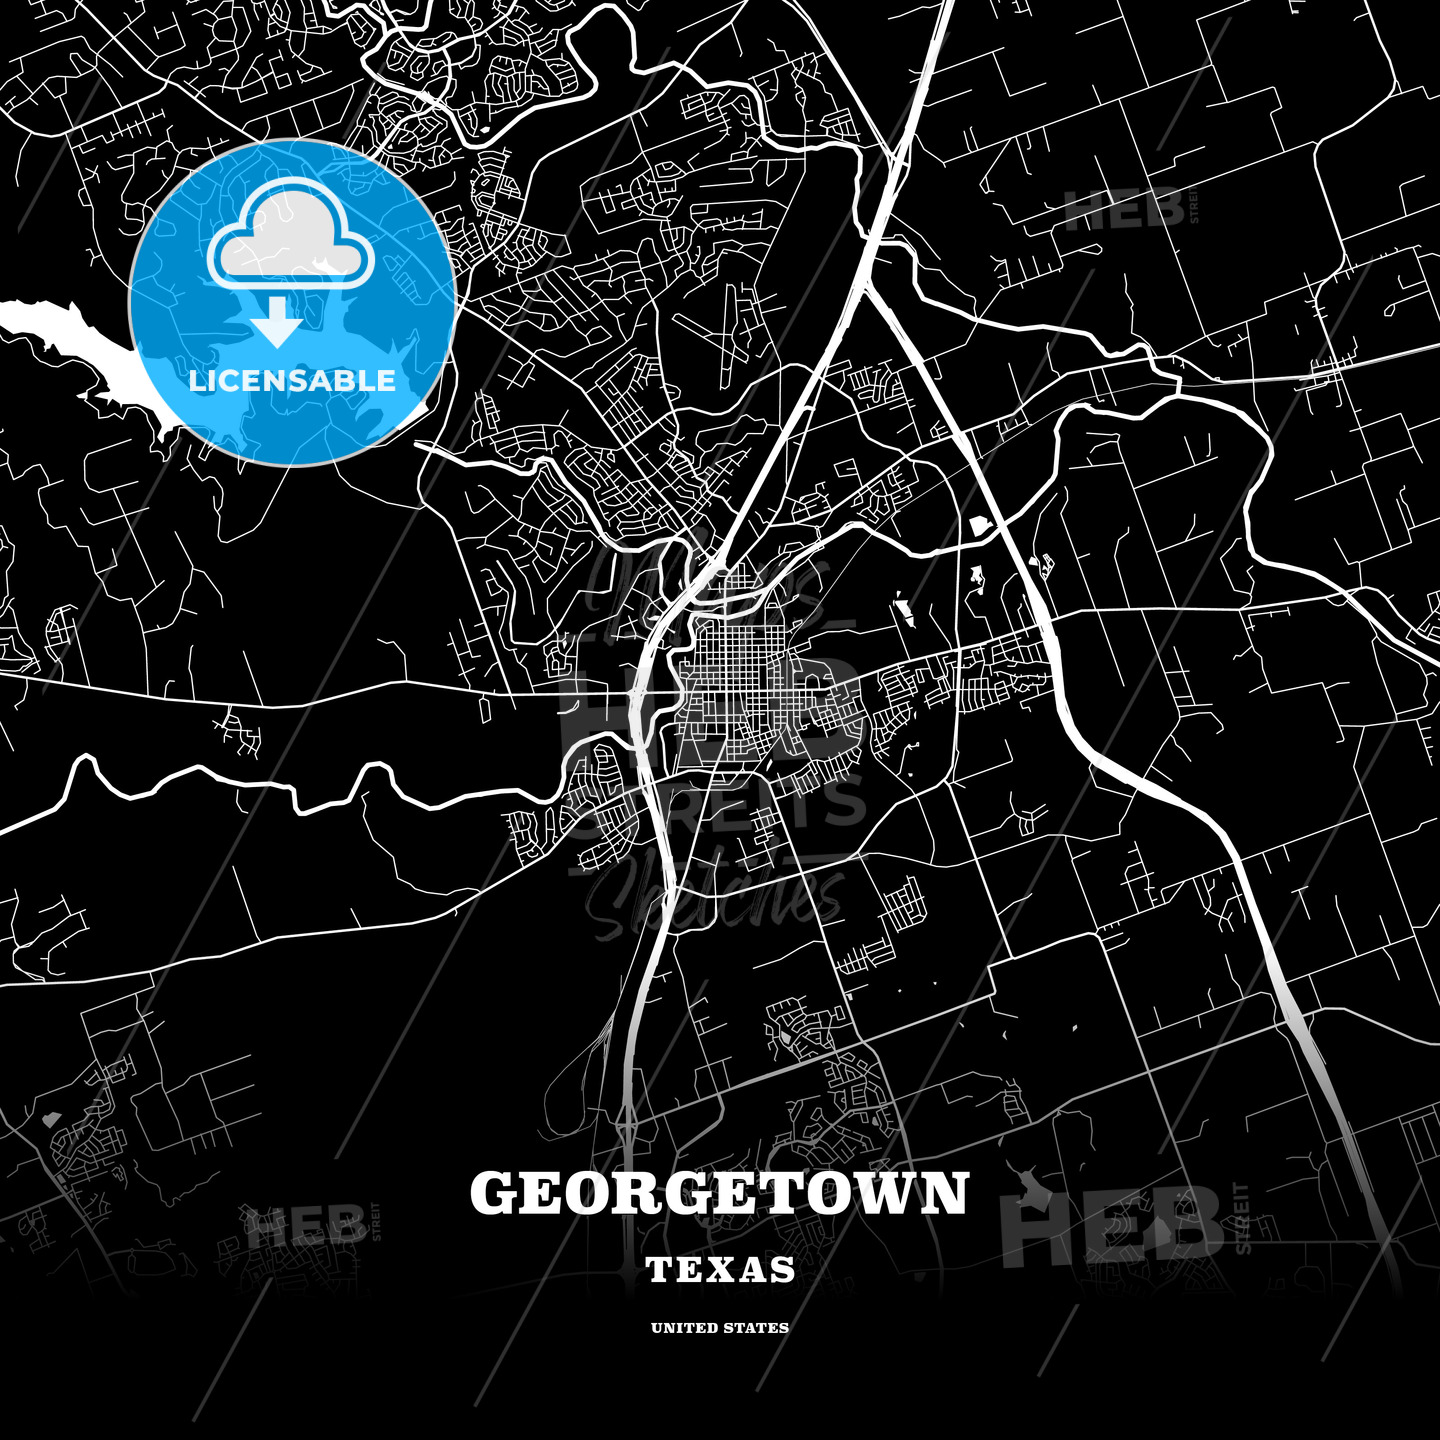 Black map poster template of Georgetown, Texas, USA on ut austin texas map, tarrytown texas map, hull texas map, new braunsfels texas map, bradford texas map, la coste texas map, johnsonville texas map, milton texas map, newberry texas map, perkins texas map, southport texas map, hudson texas map, river plantation texas map, vista ridge texas map, victor texas map, ellsworth texas map, deanville texas map, williamson county texas map, jonesboro texas map, lima texas map,